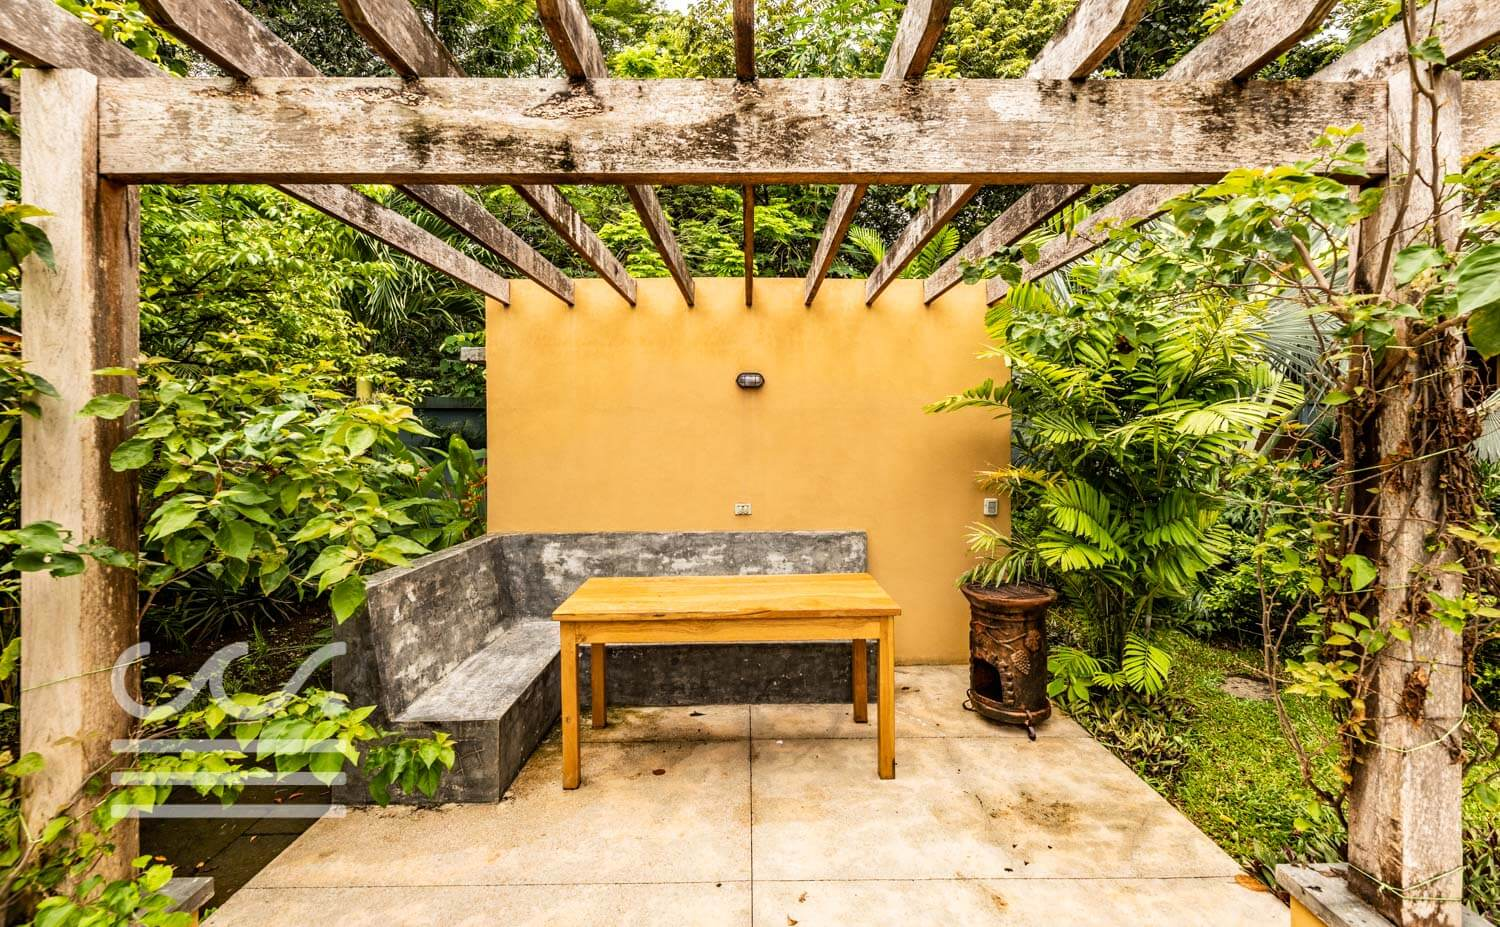 Endless-Summer-Wanderlust-Realty-Real-Estate-Rentals-Nosara-Costa-Rica-4.jpg